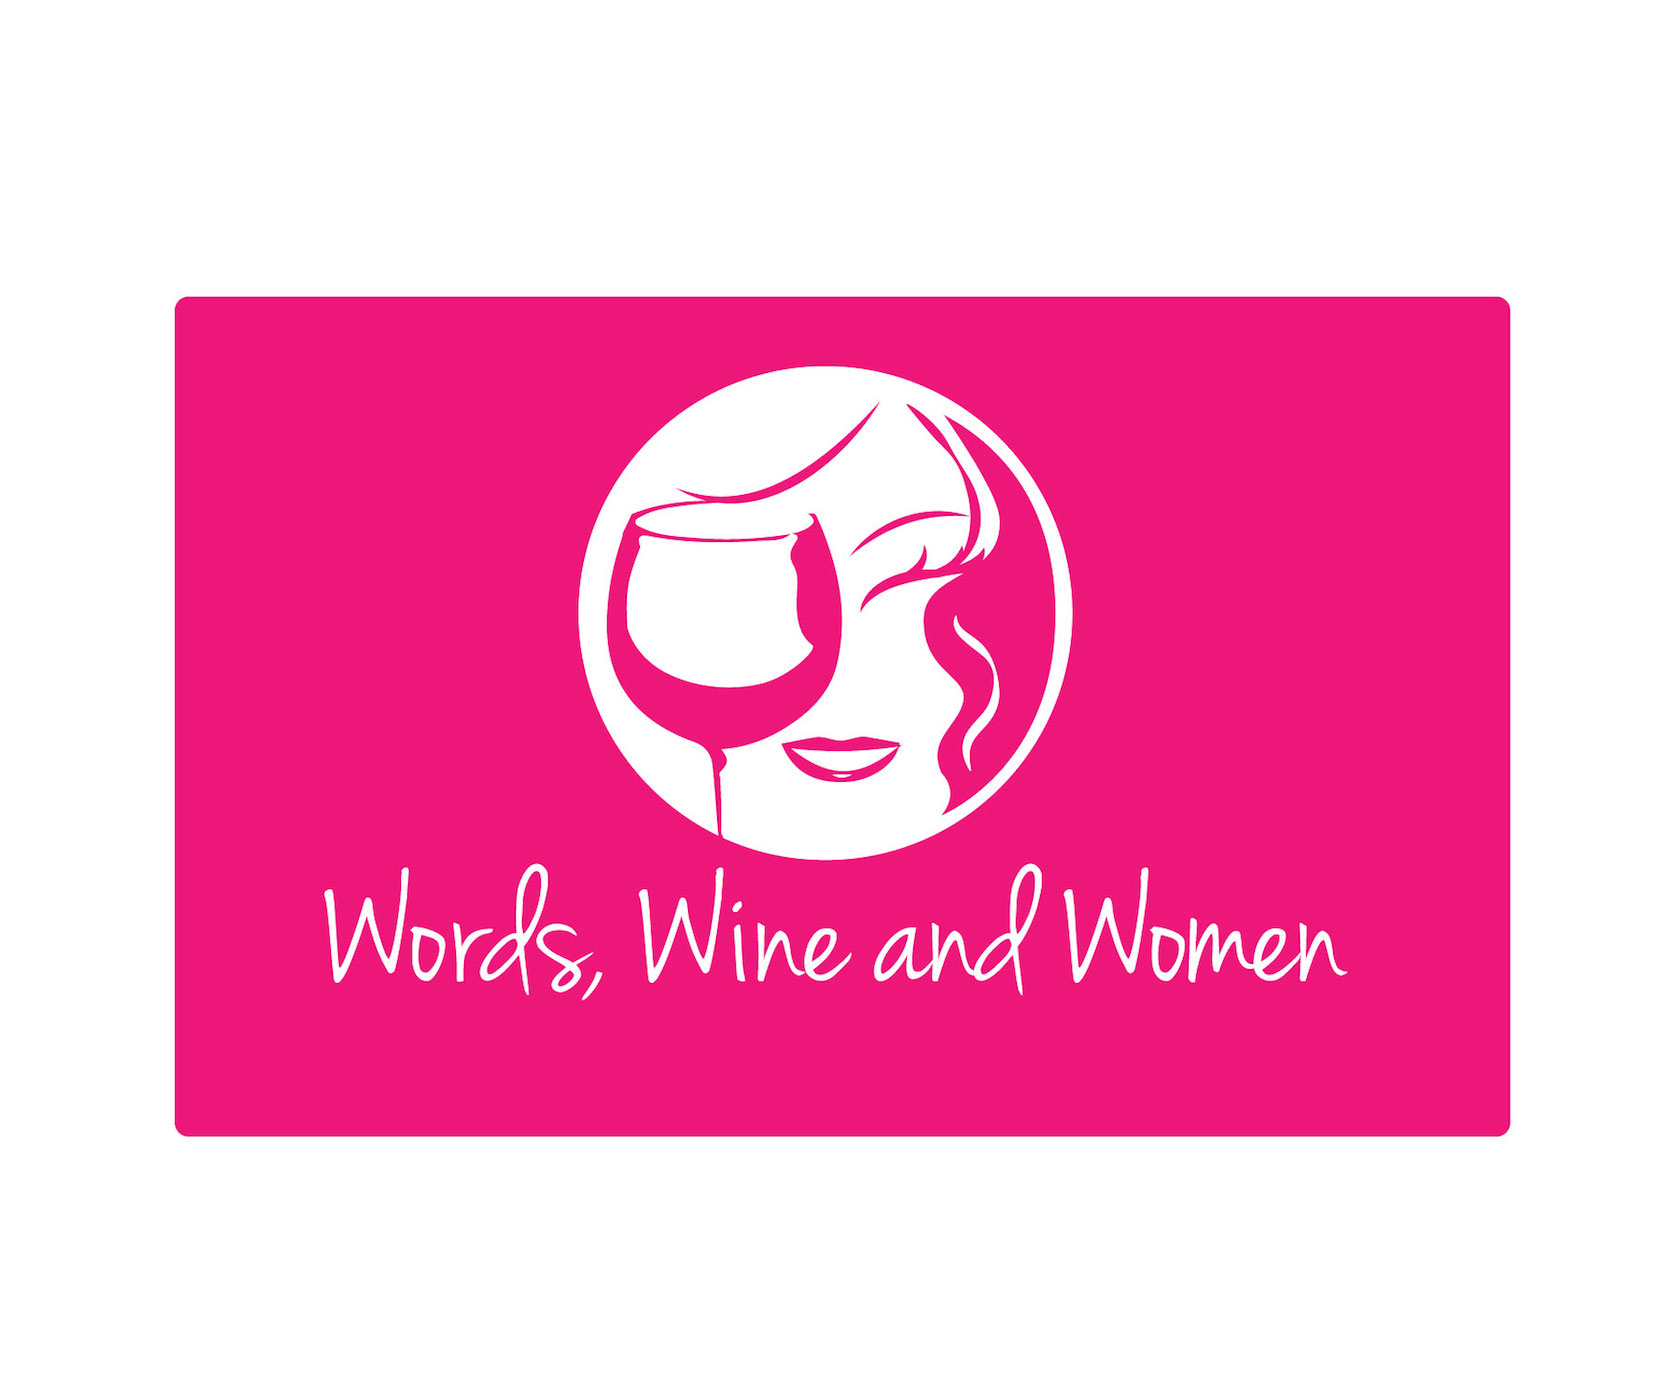 Words, Wine & Women